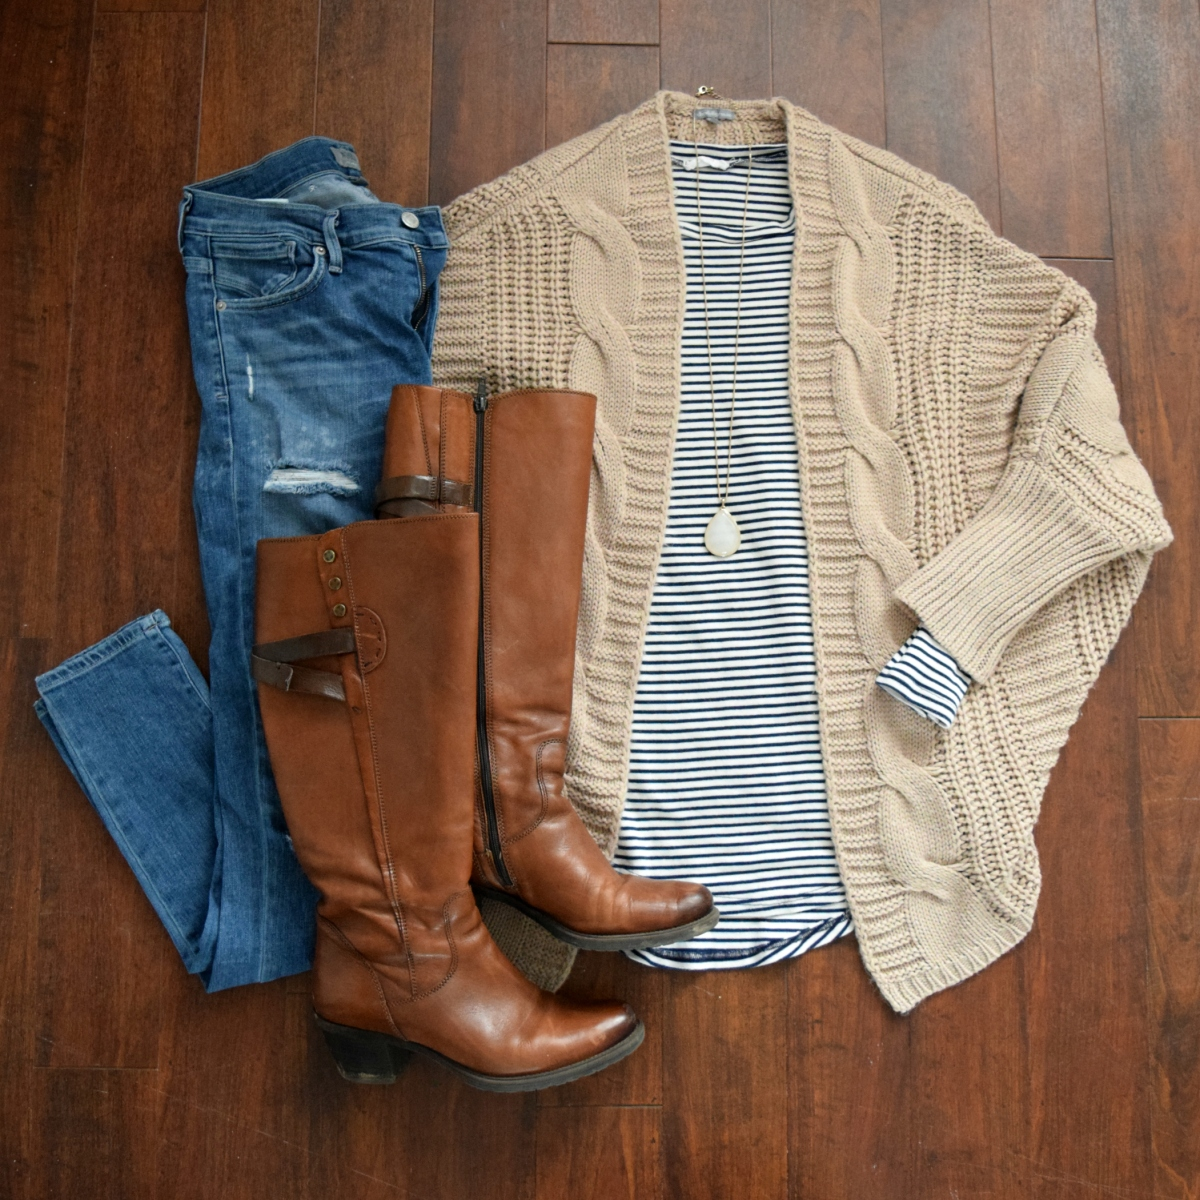 A cozy cardigan, striped tee, high-waisted jeans, and riding boots